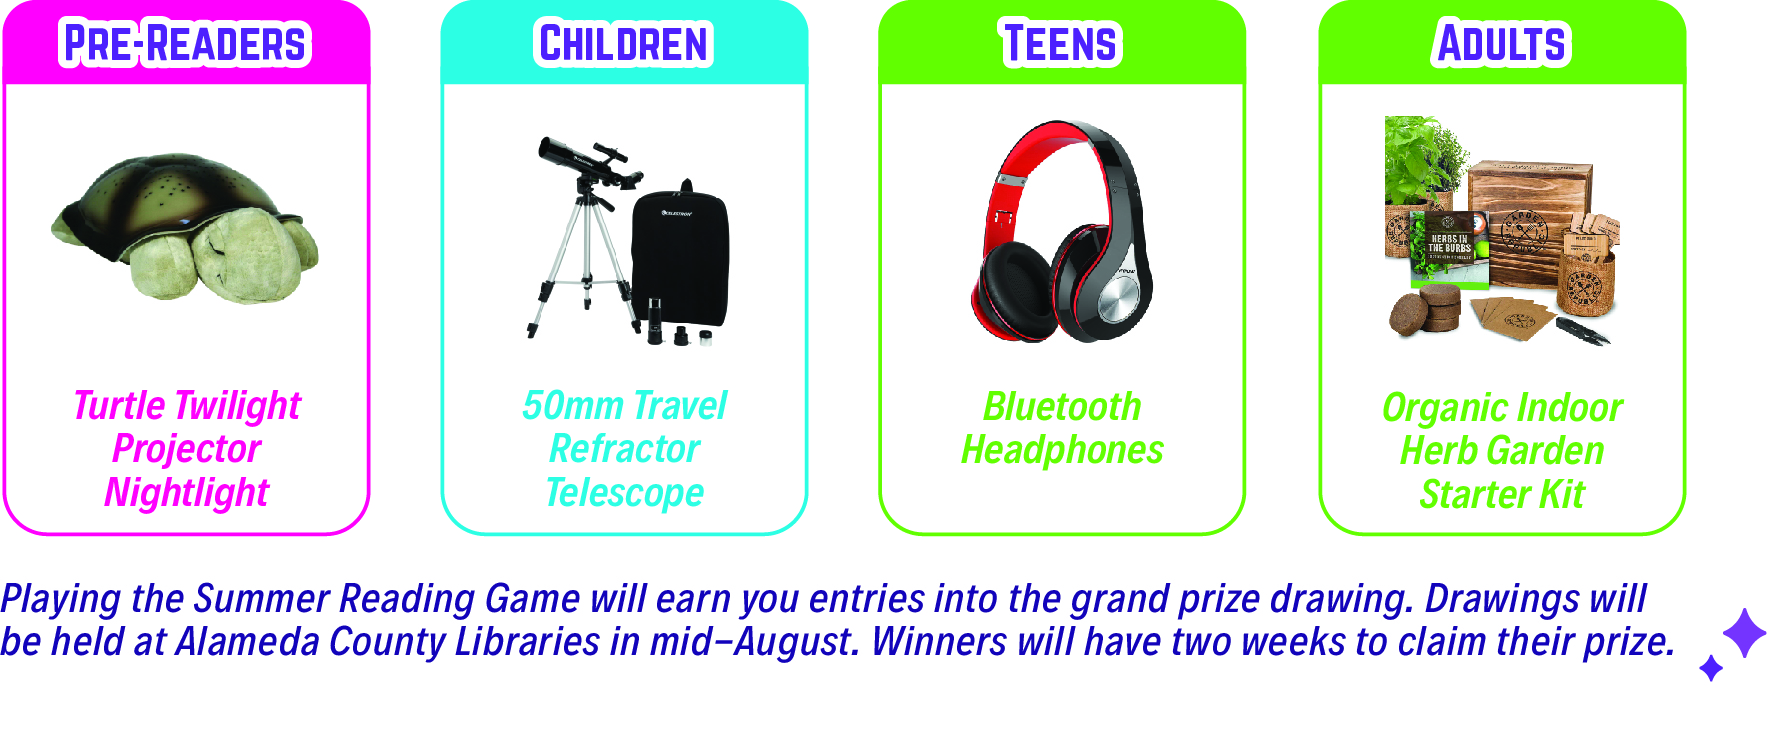 Grand prizes. Pre-reader projector turtle. Children telescope. Teen bluetooth headphones. Adult indoor herb garden.